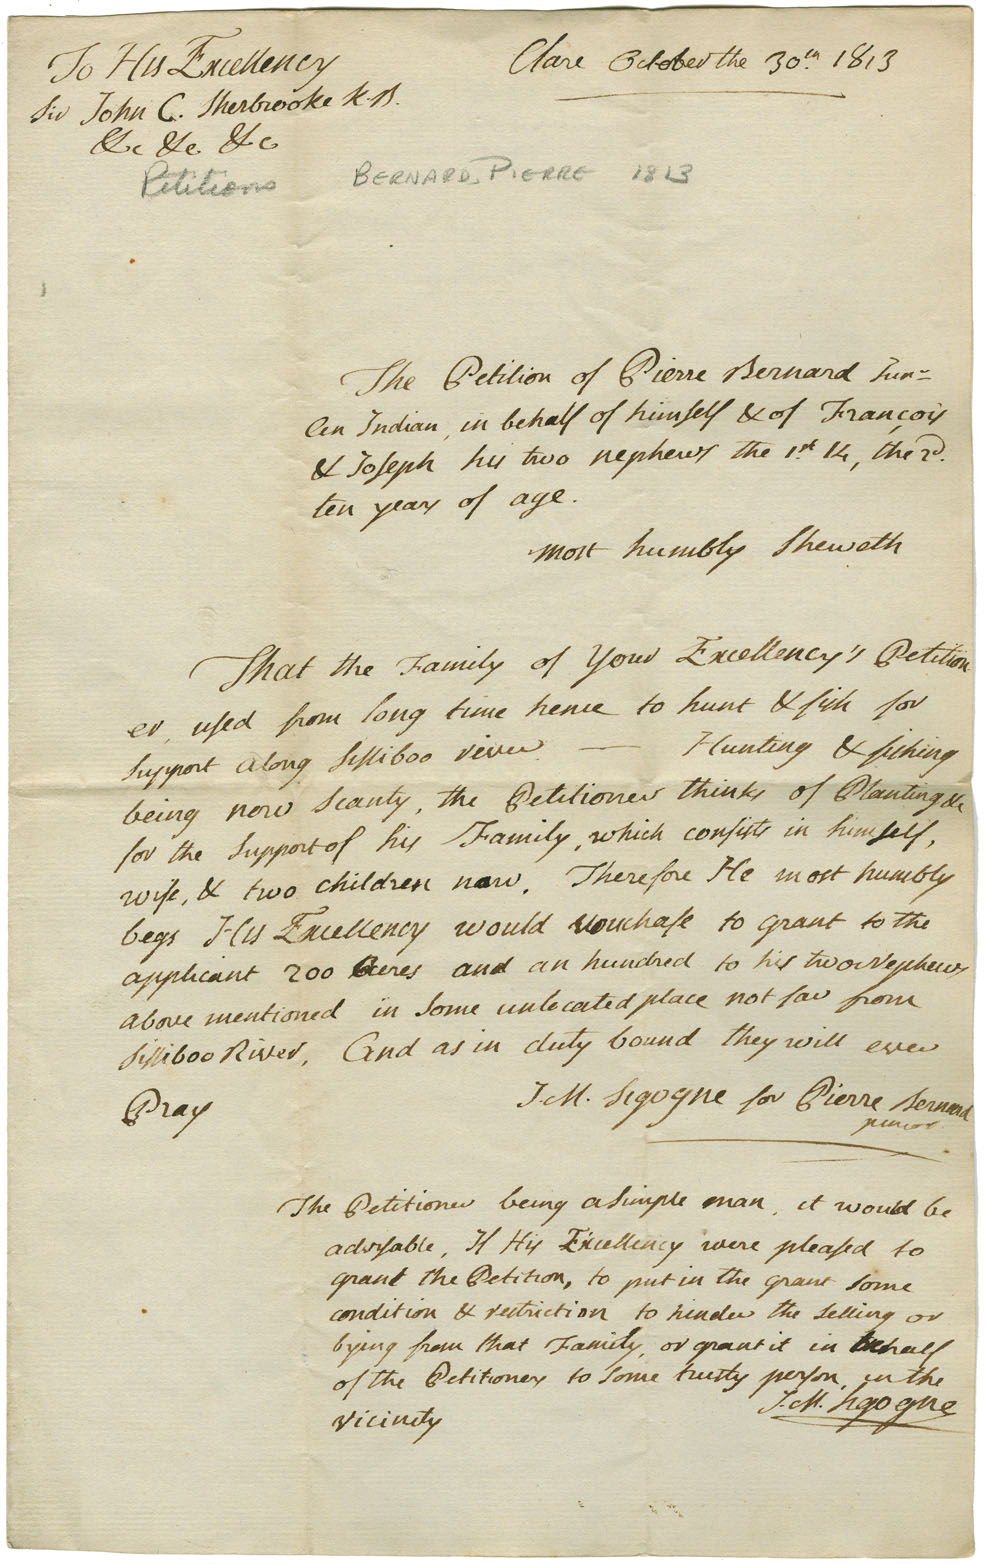 Petition of Pierre Bernard asking for land for himself and his two nephews. He has lived by hunting and fishing along the Sissiboo River. Game is now scarce; he would like to 'plant.' A note by Abbe' Sigogne suggests that the grant be made restrictive so that the petitioners may not sell or part with the land, or that it may be given to some trusty person in the vicinity. Left to the Committee on Indian Affairs.